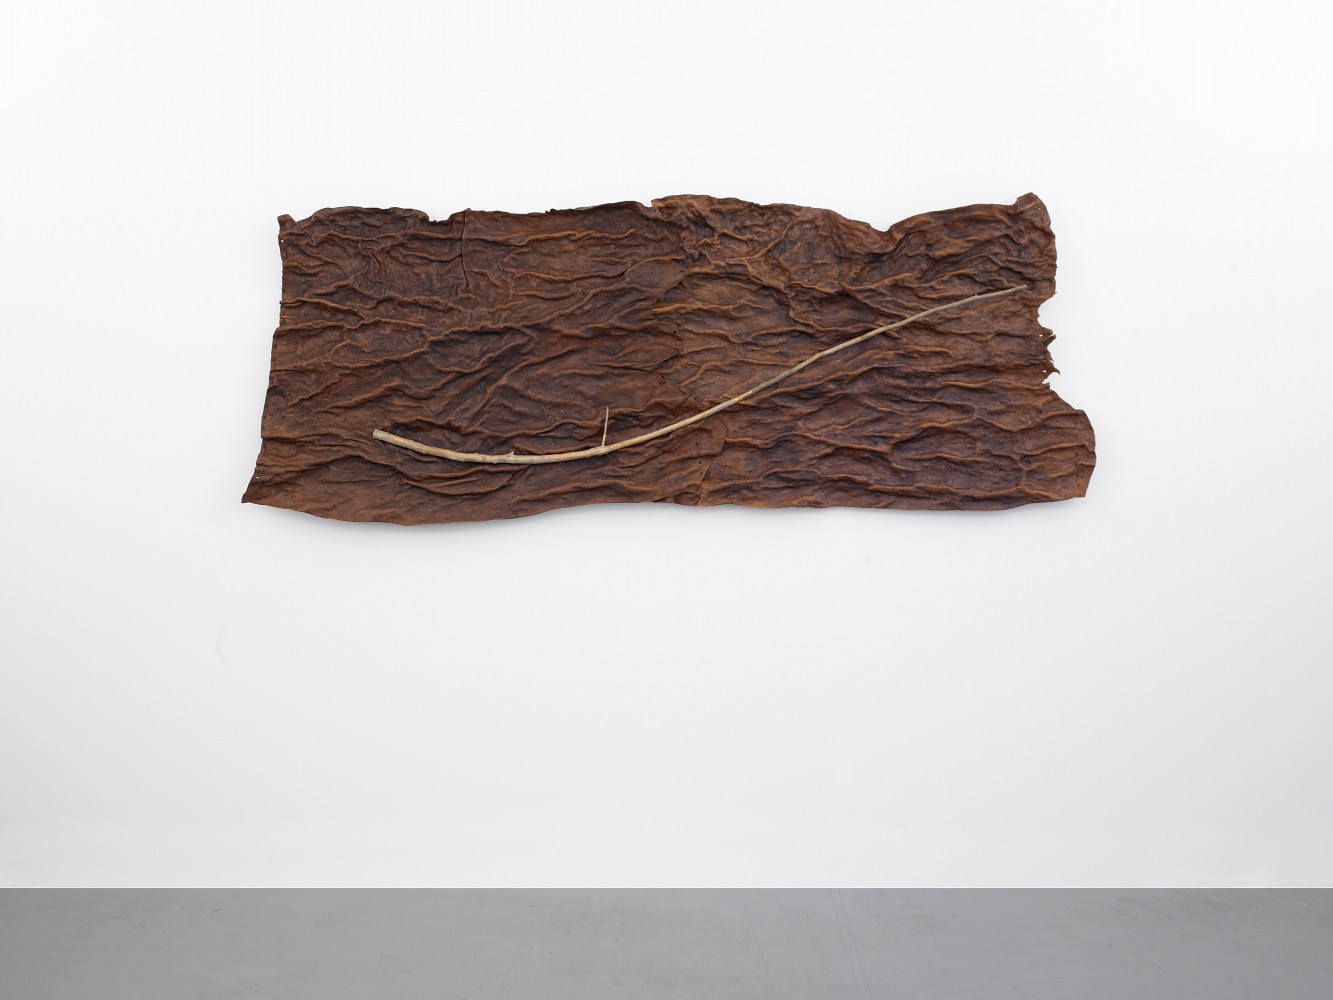 'Guiseppe Penone', Installation view, 2014